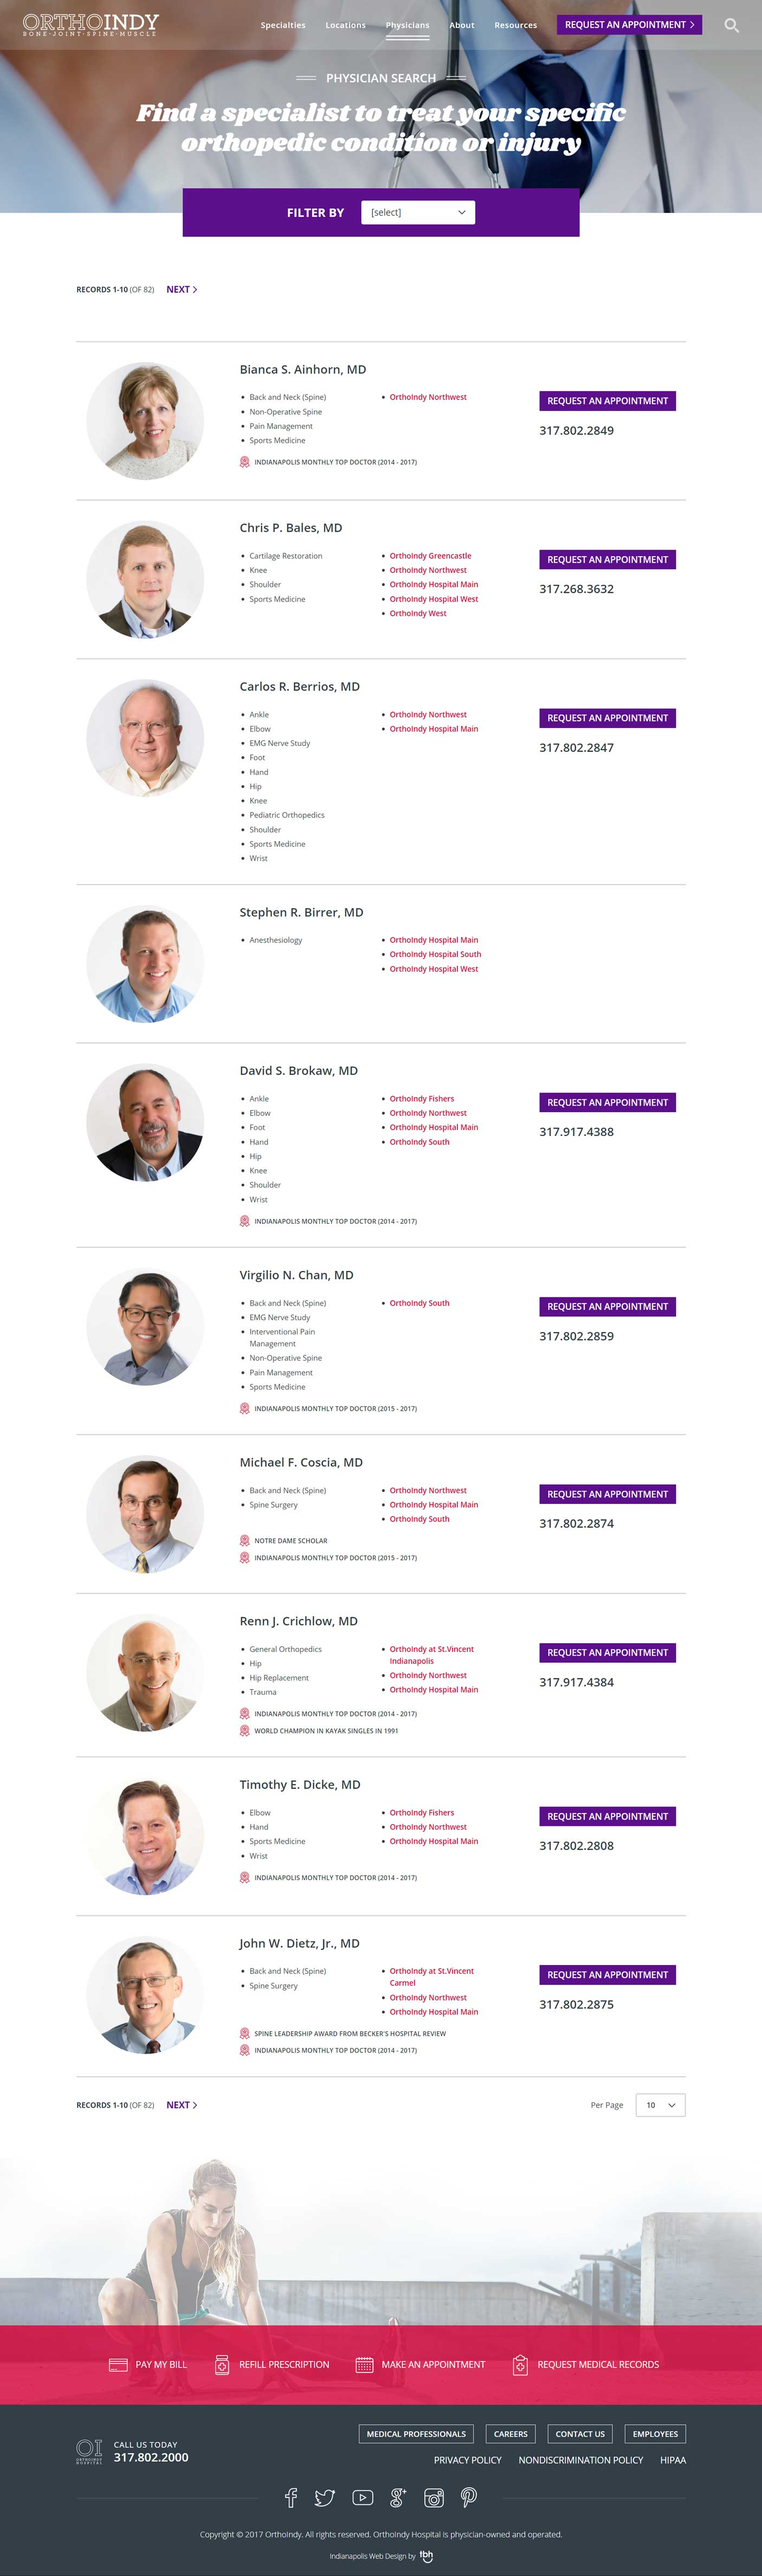 Physicians Directory Page